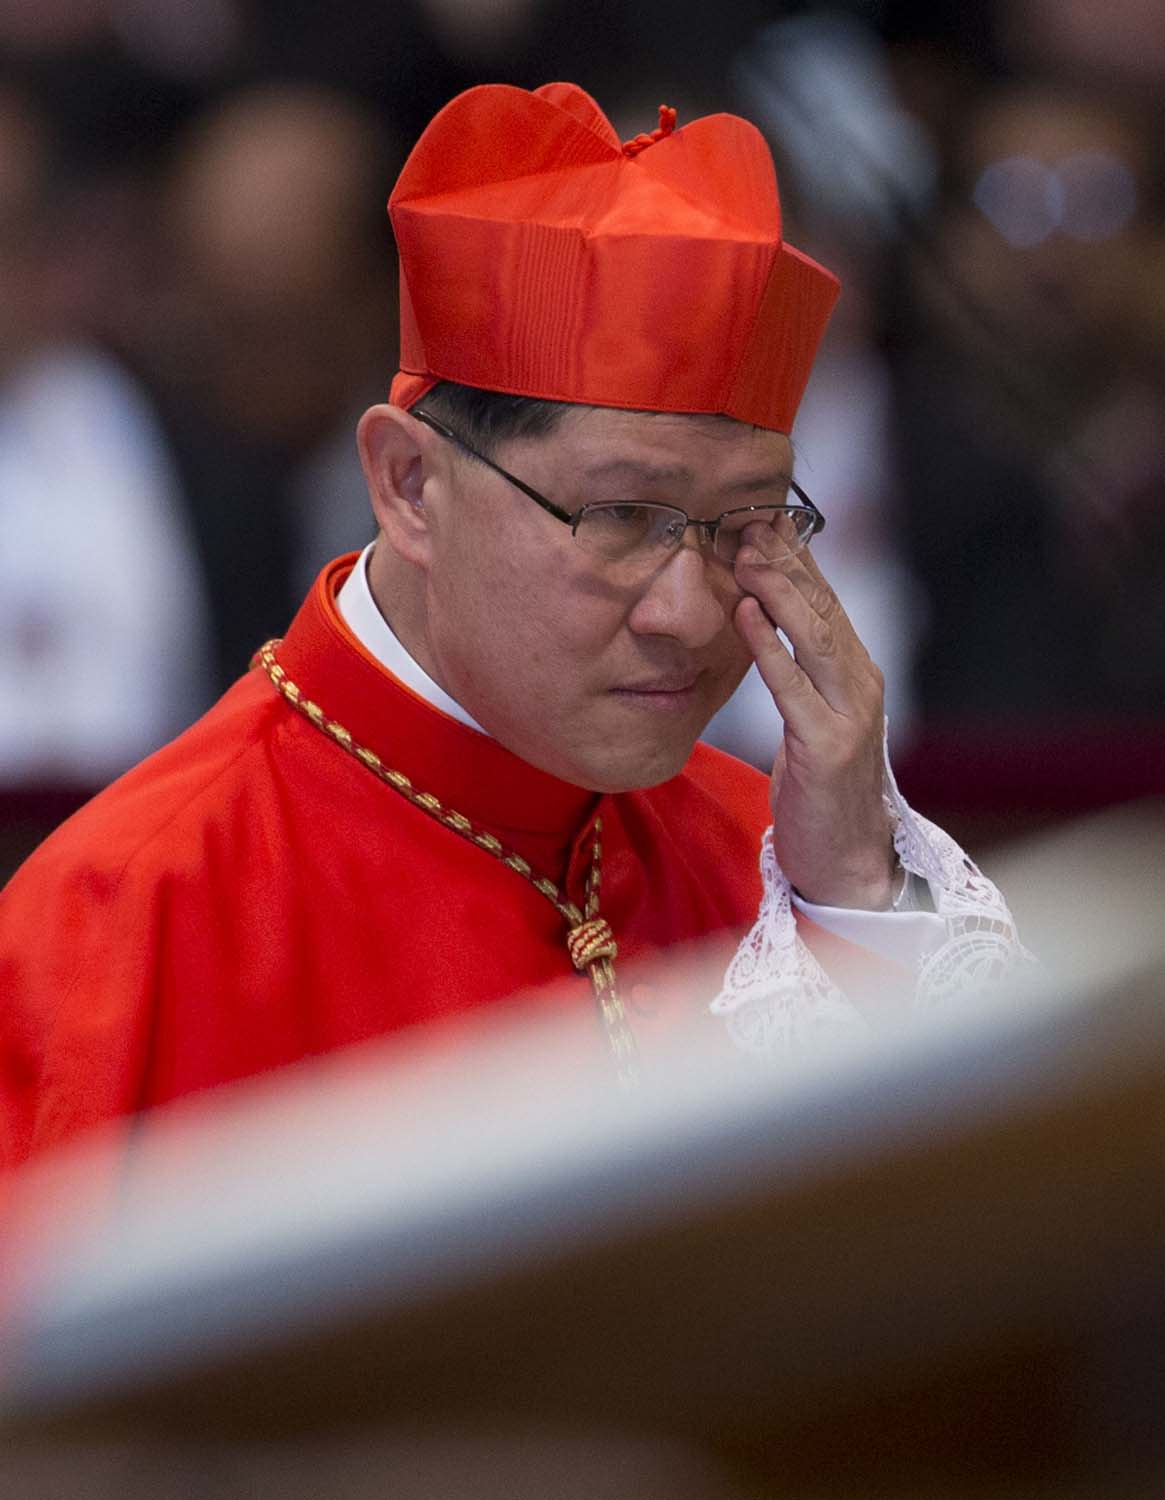 Newly elected Cardinal Luis Antonio Tagle, Archbishop of Manila, Philippines, wipes his eyes after he received the red three-cornered biretta hat from Pope Benedict XVI during a consistory in St. Peter's Basilica at the Vatican, Saturday, Nov. 24, 2012. Six new cardinals are joining the elite club of churchmen who will elect the next pope, bringing a more geographically diverse mix into the European-dominated College of Cardinals. (AP Photo/Andrew Medichini)